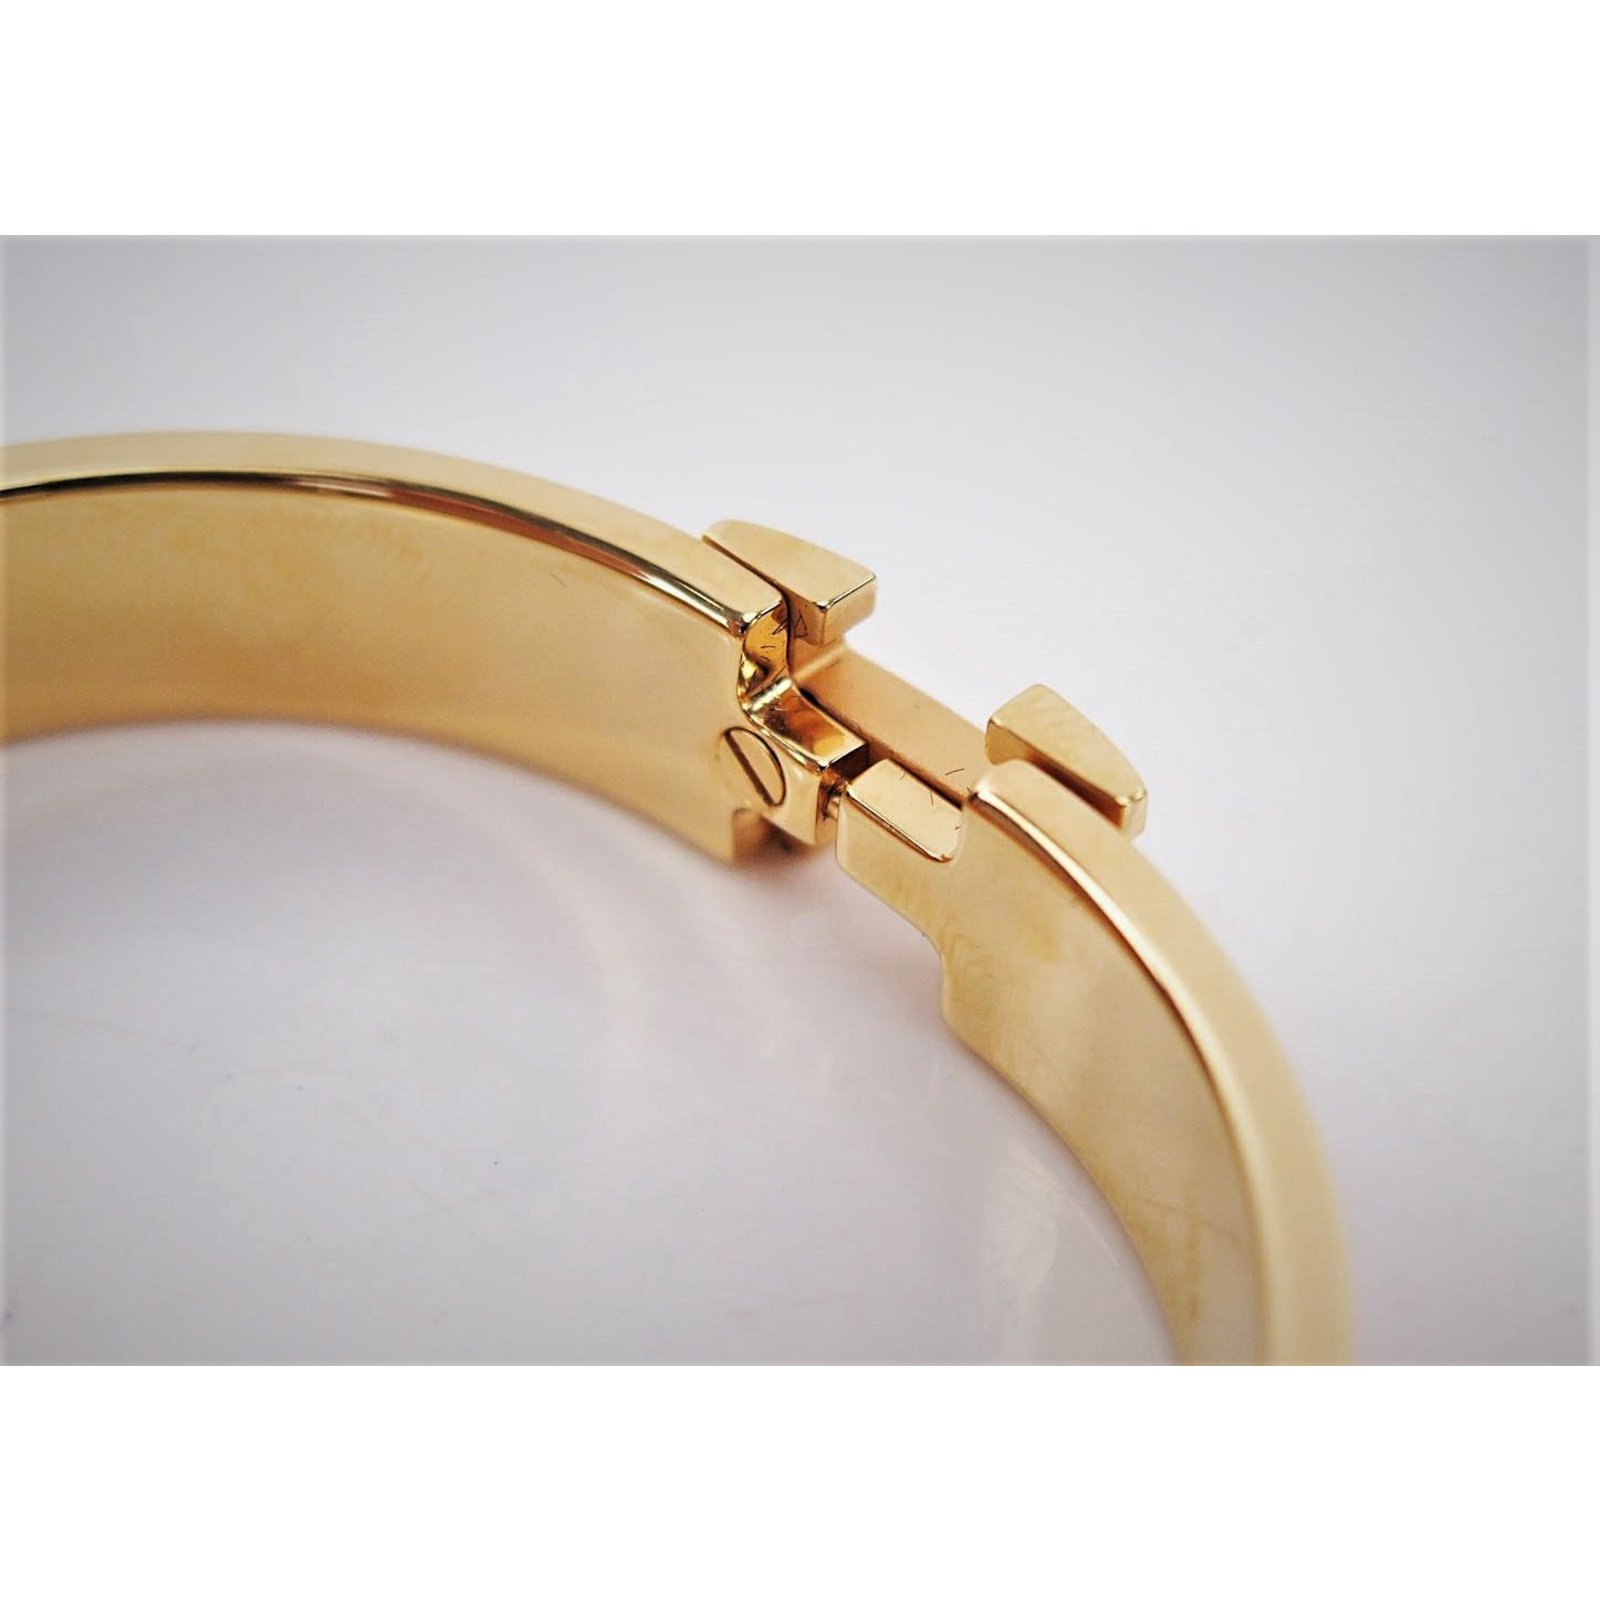 Herm 232 S Herm 232 S Click Clack H Gold Plated Bracelet And